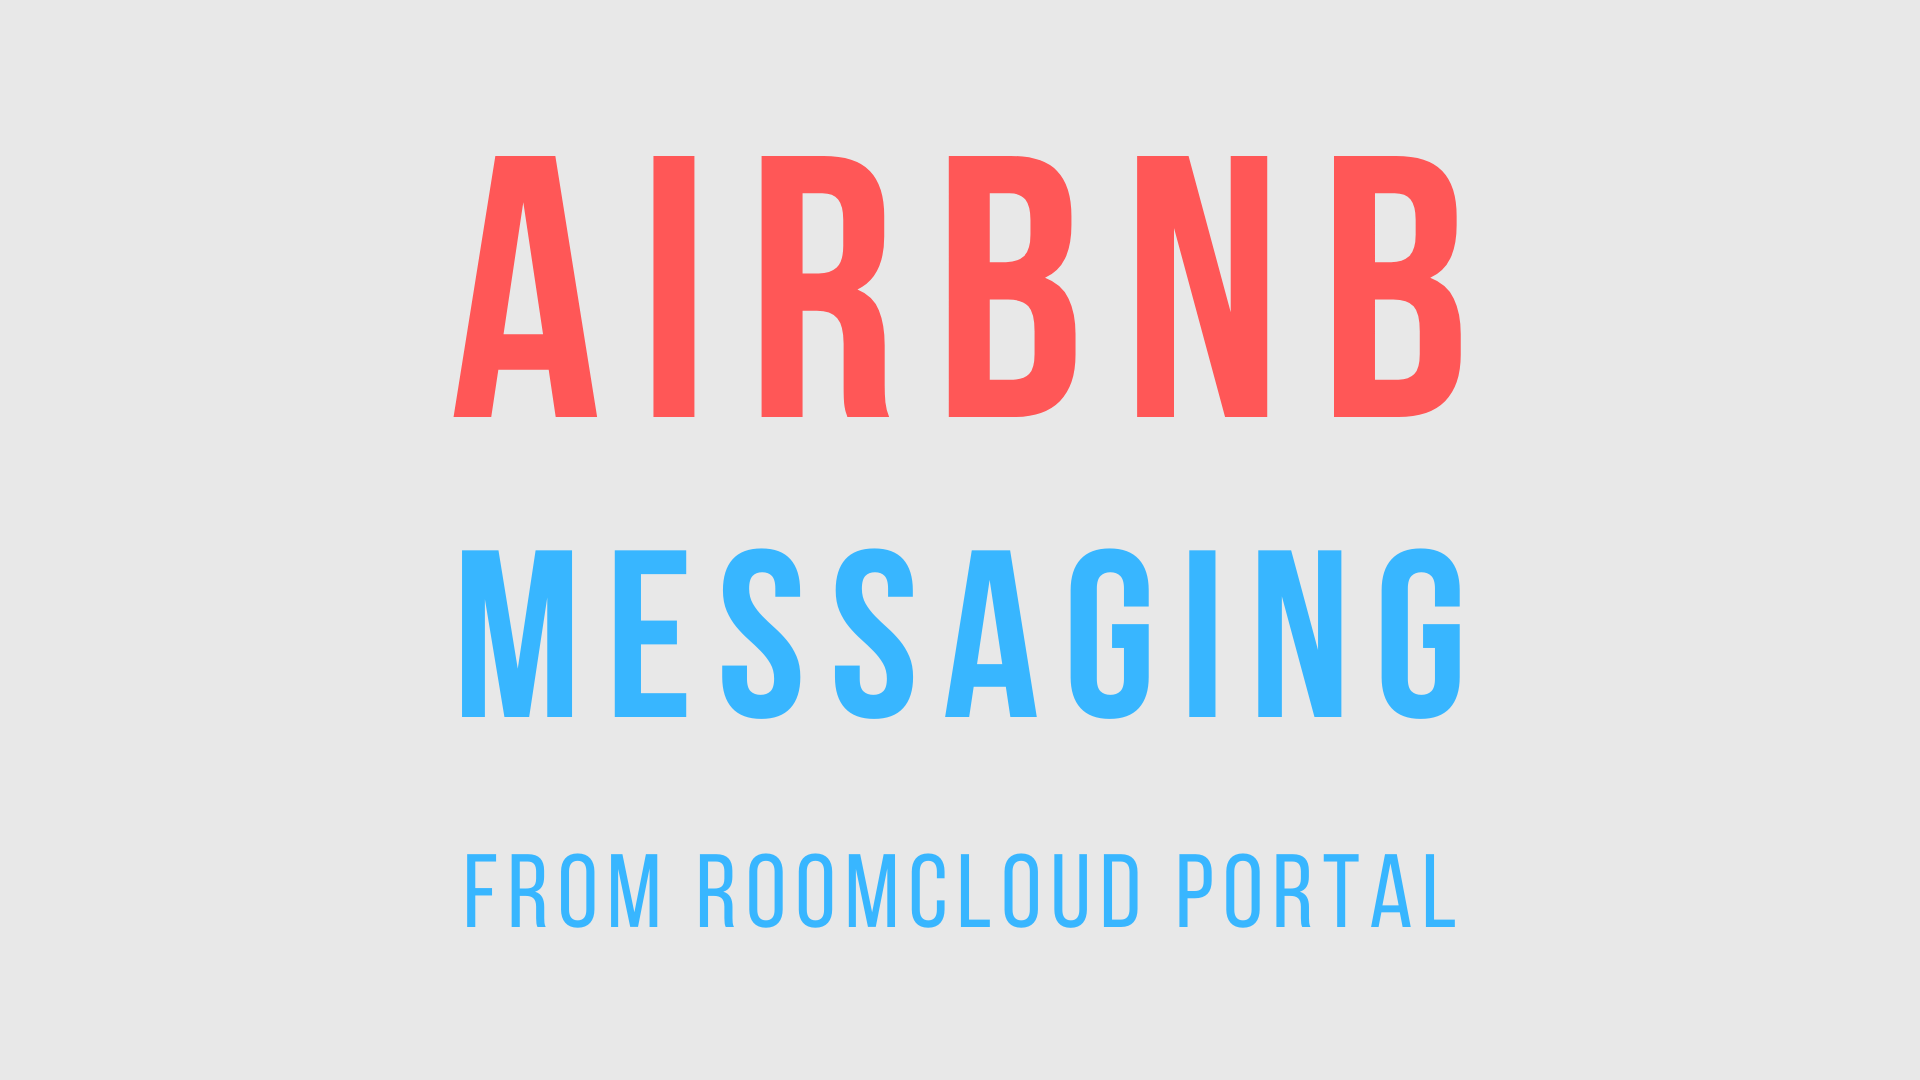 Airbnb Messaging